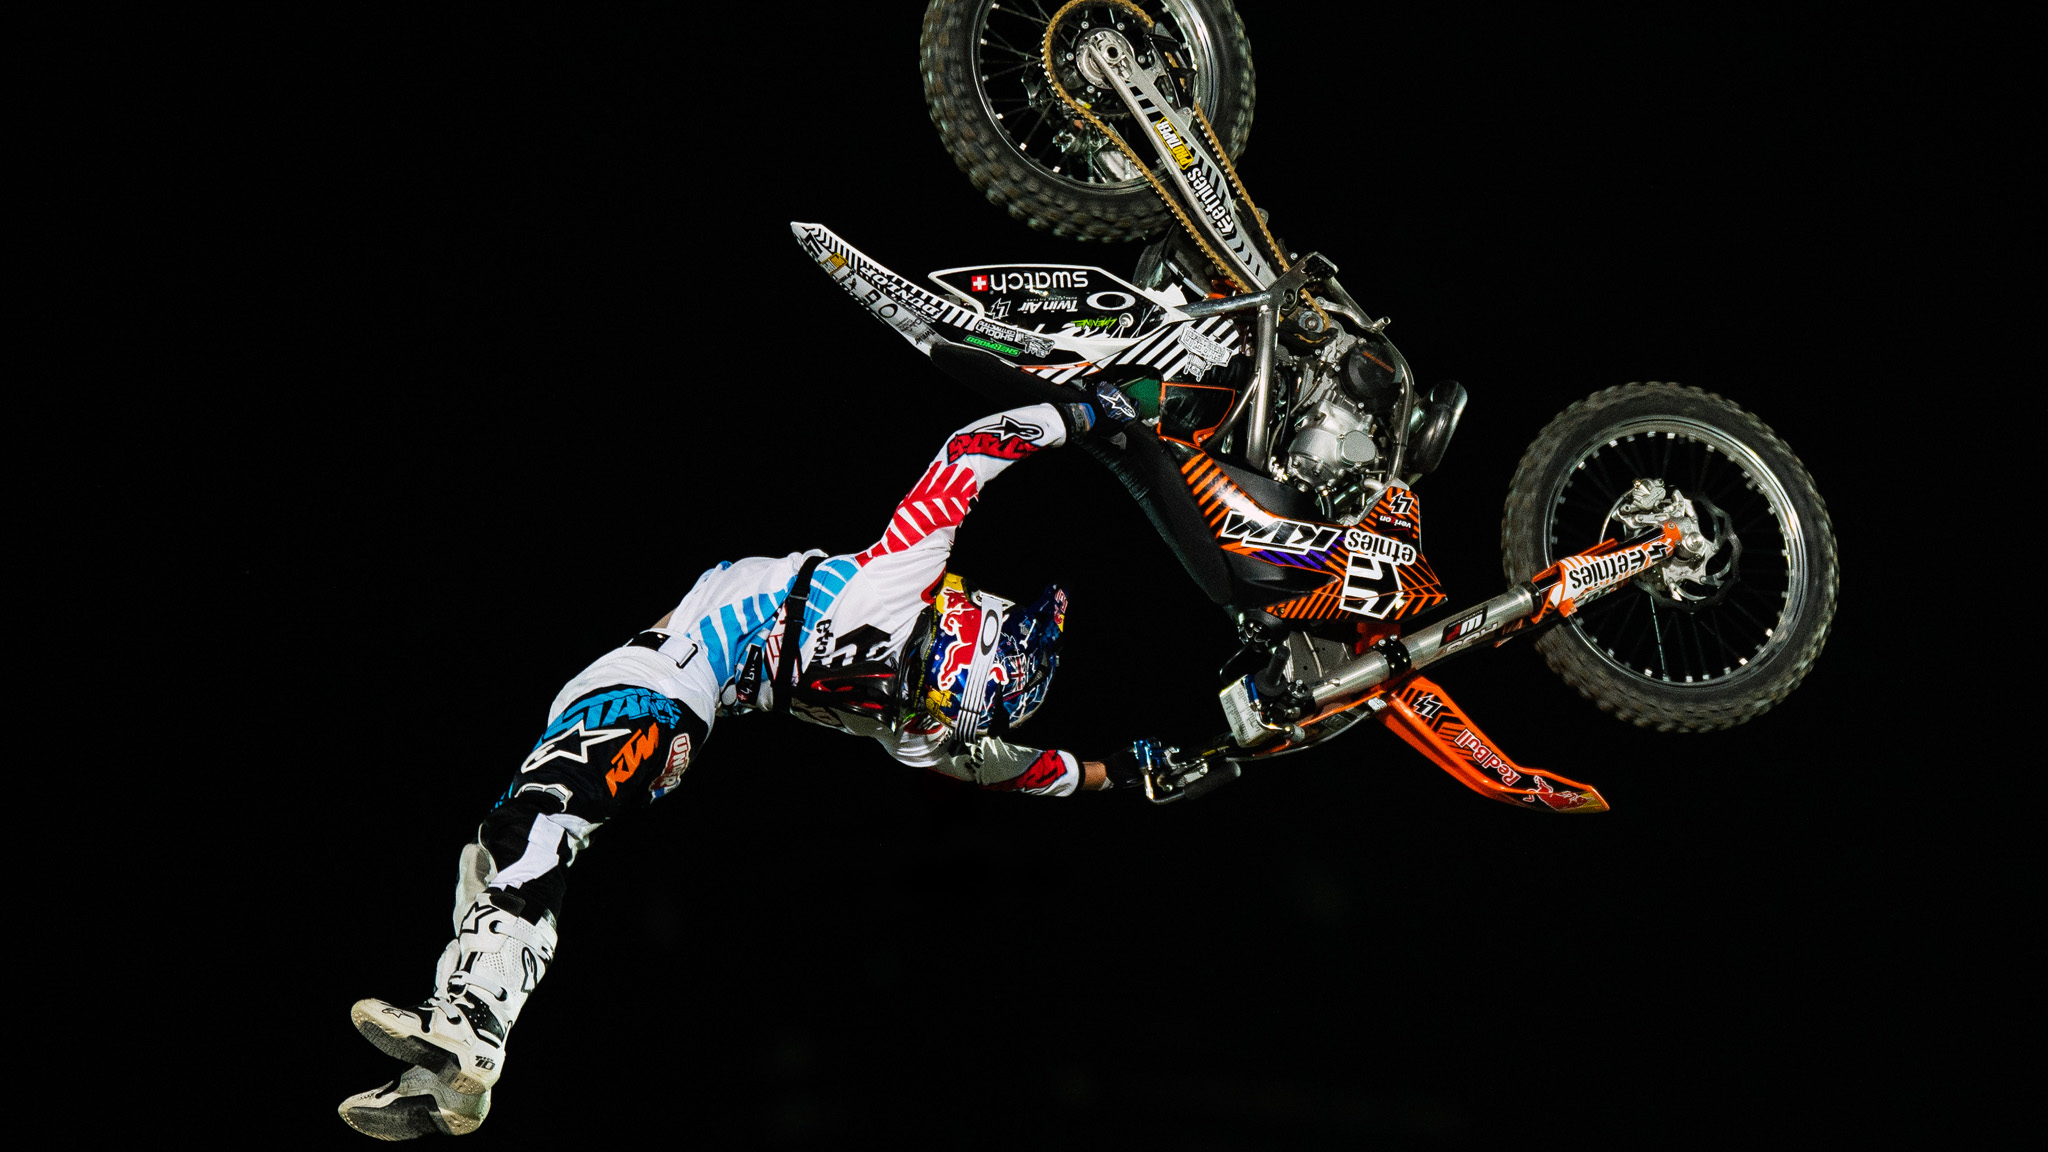 osaka 39 s taka higashino wins red bull x fighters in japanese hometown. Black Bedroom Furniture Sets. Home Design Ideas